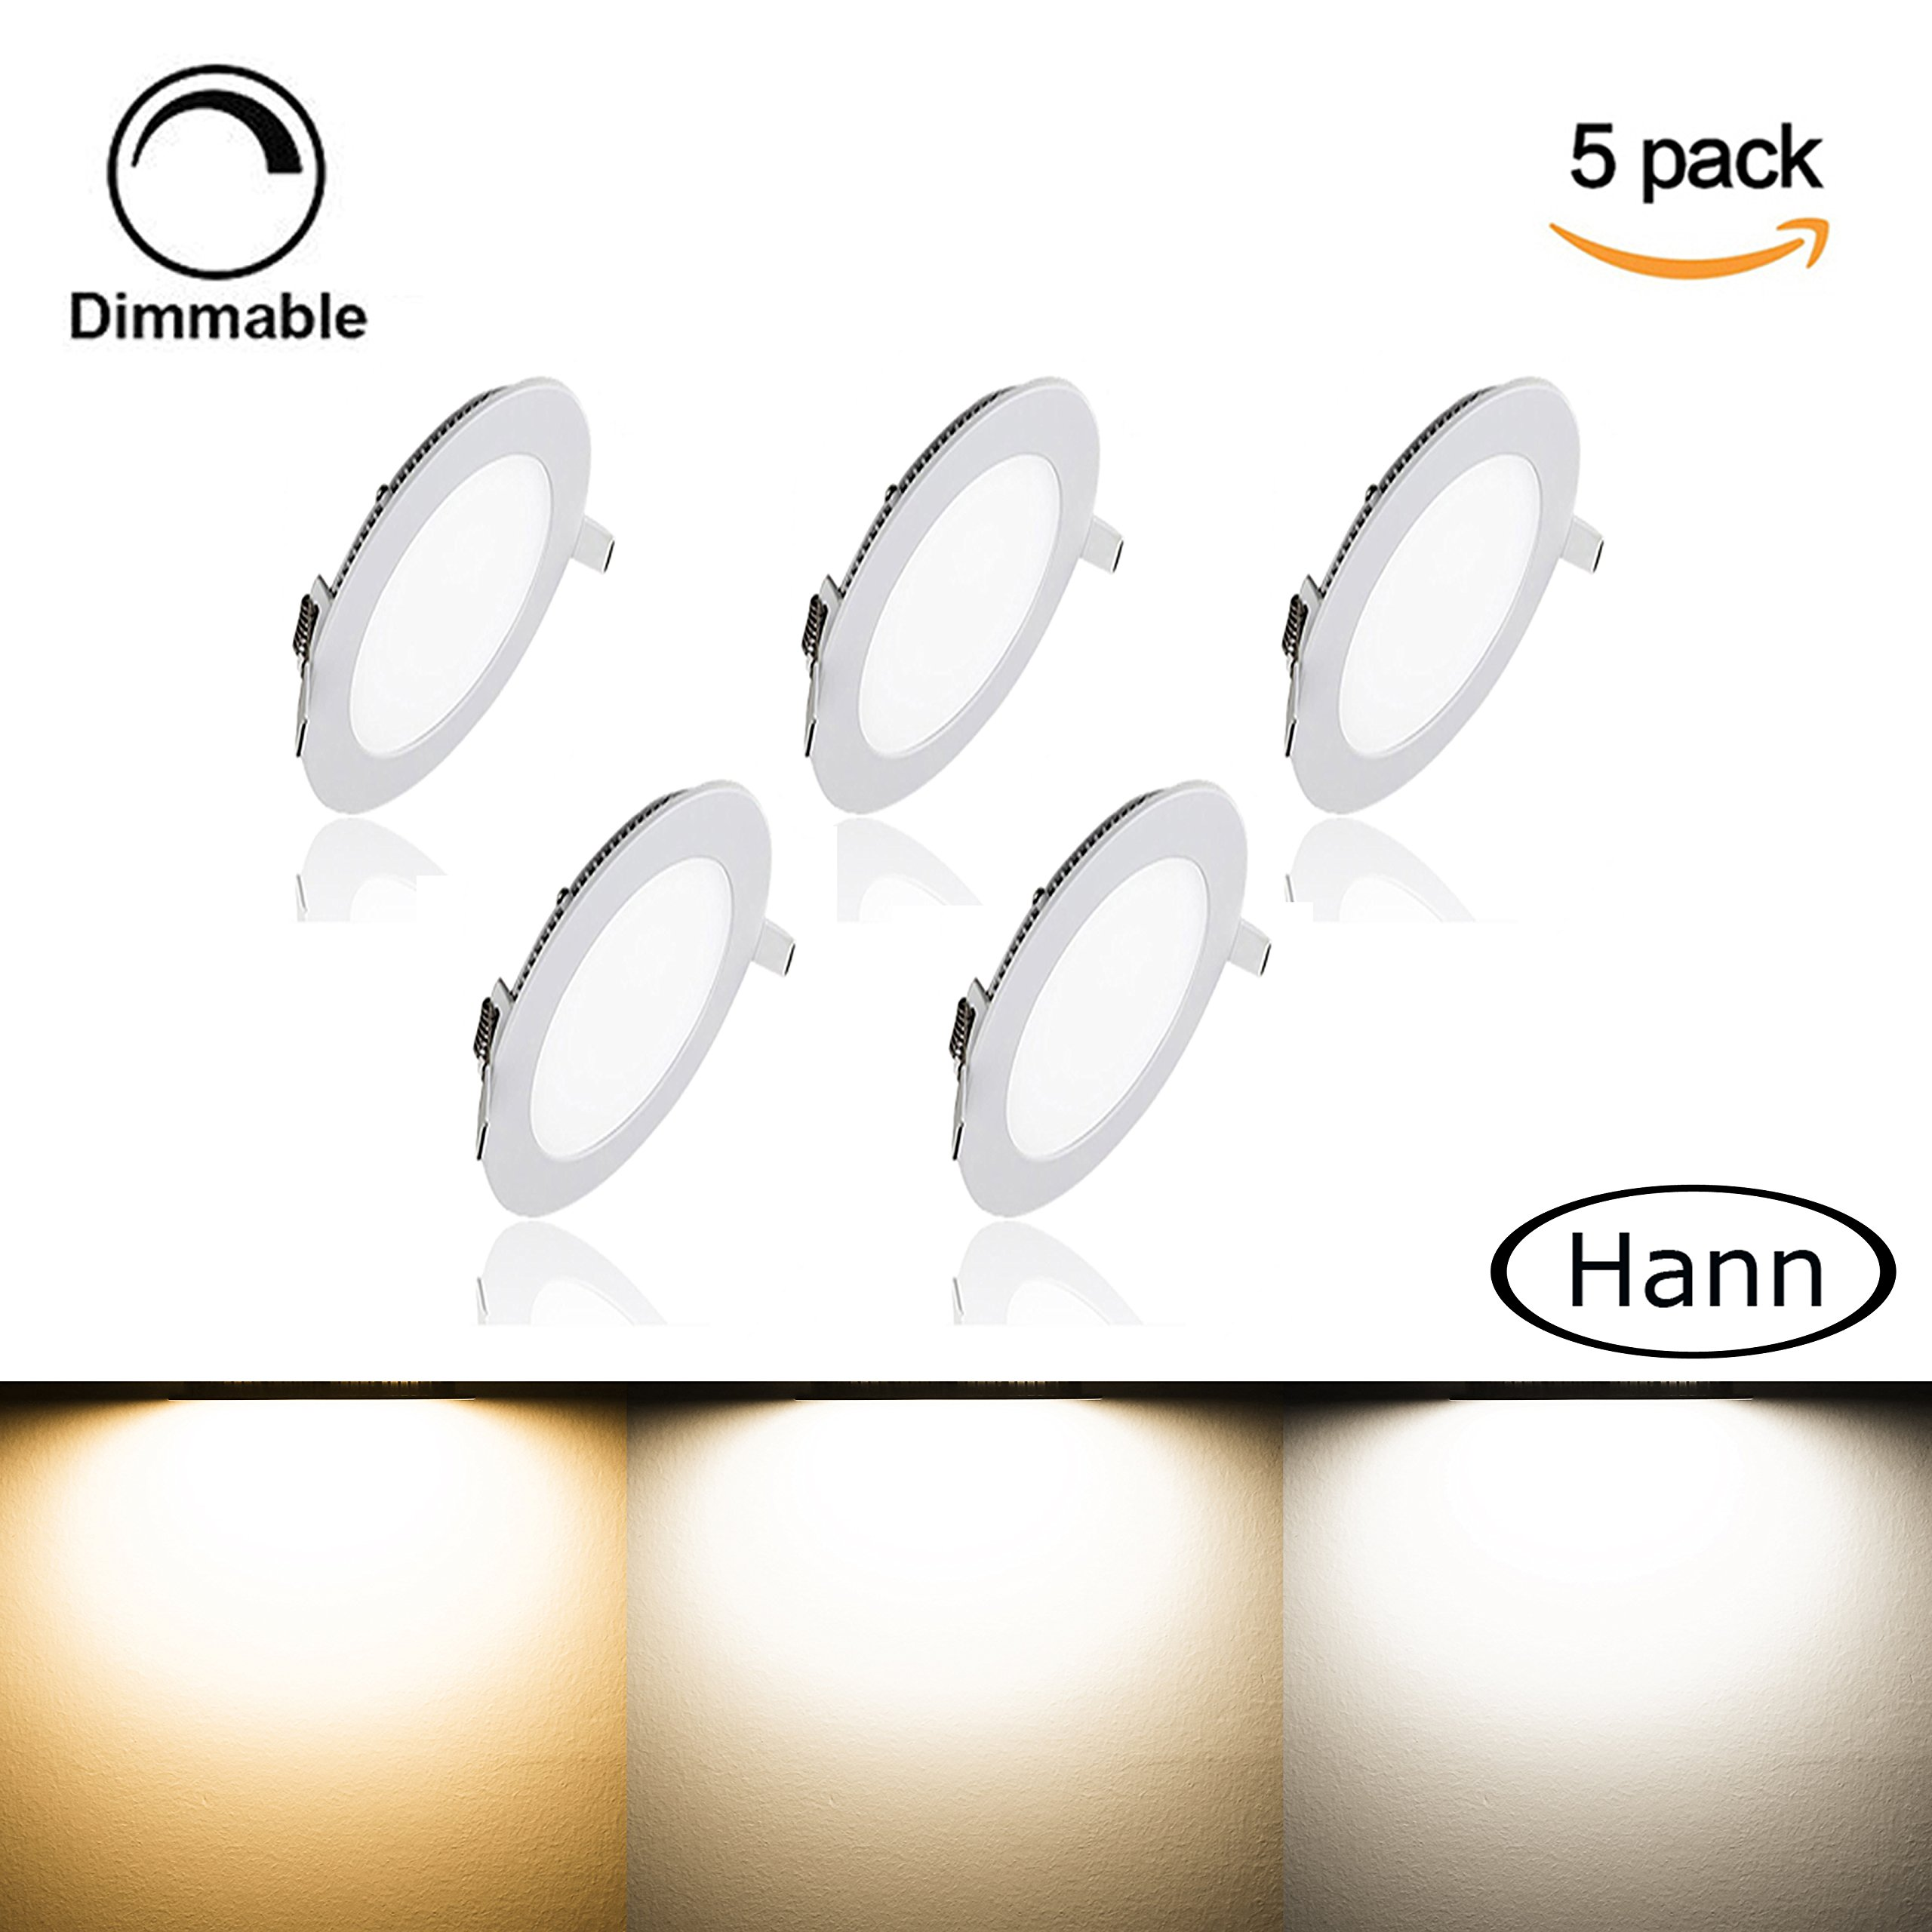 [5 Pack] Round Ceiling Light,Hann Ultra-thin Recessed Downlight Lamp,LED Bathroom Bedroom Lighting Fixtures 15W 1200lm,3000K,100W Incandescent Equivalent,Cut Hole 7.1 Inch,AC100-120V,with LED Driver